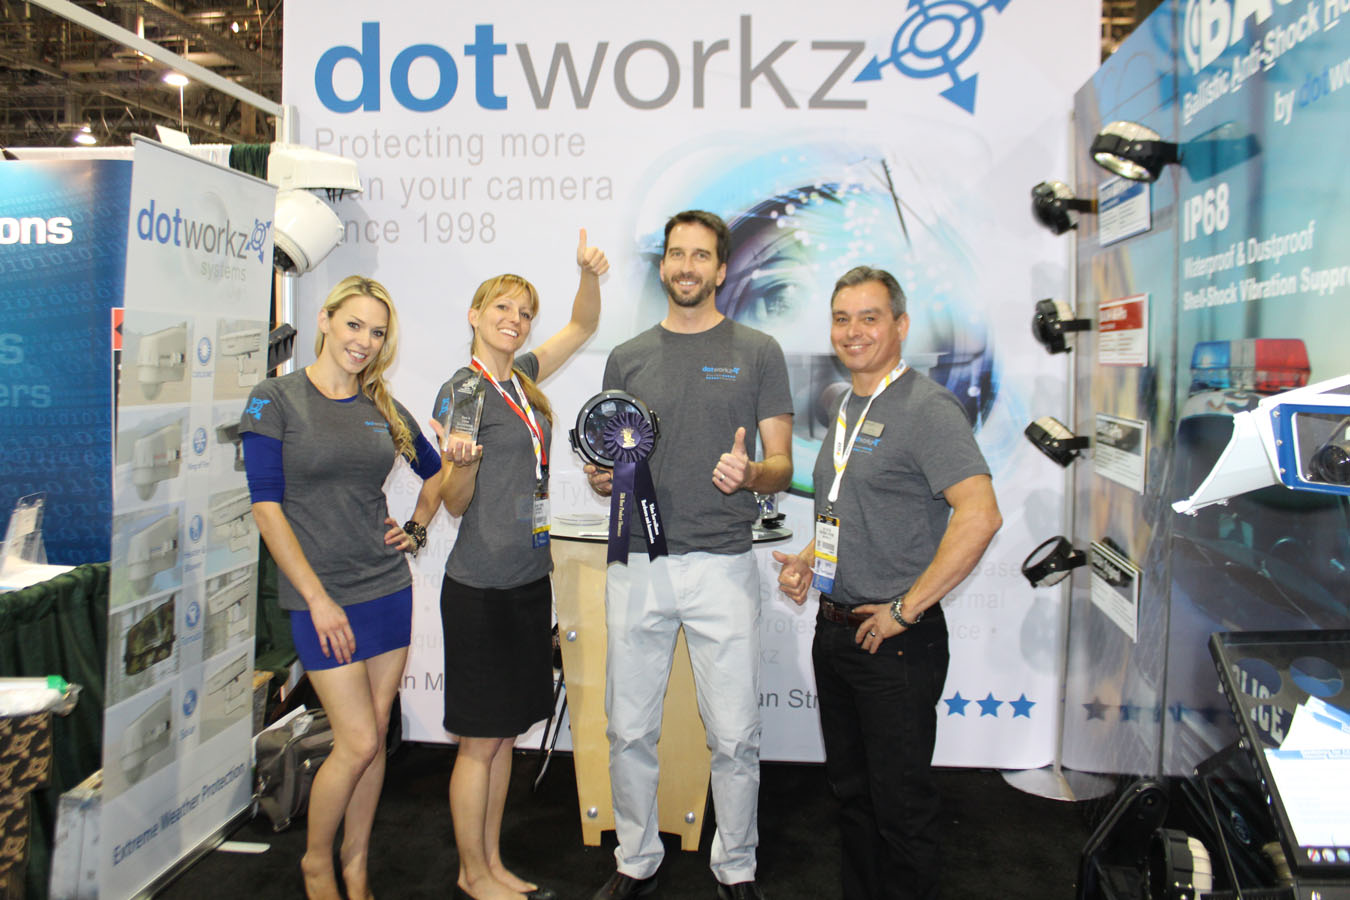 dotworkz 2015 trade show photos isc west 2015 12